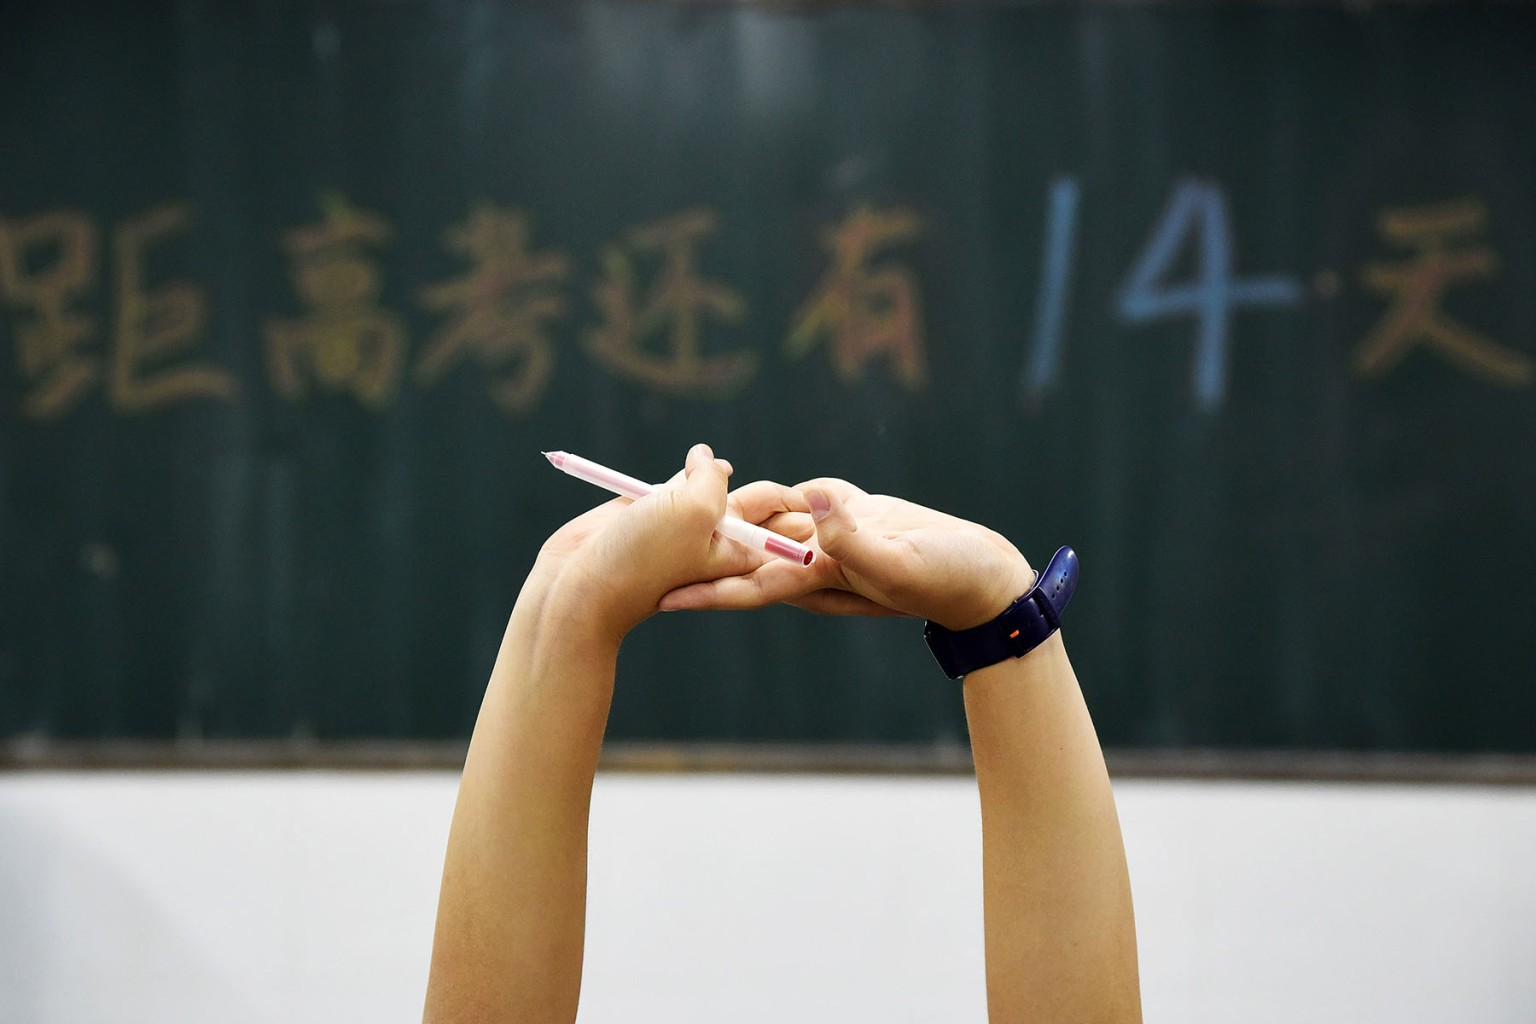 A high school student stretches May 23 as a countdown to the annual gaokao, or college entrance examinations, is written on the blackboard in Handan, China. The grueling nationwide exams take place on June 7 and June 8 this year. AFP/Getty Images